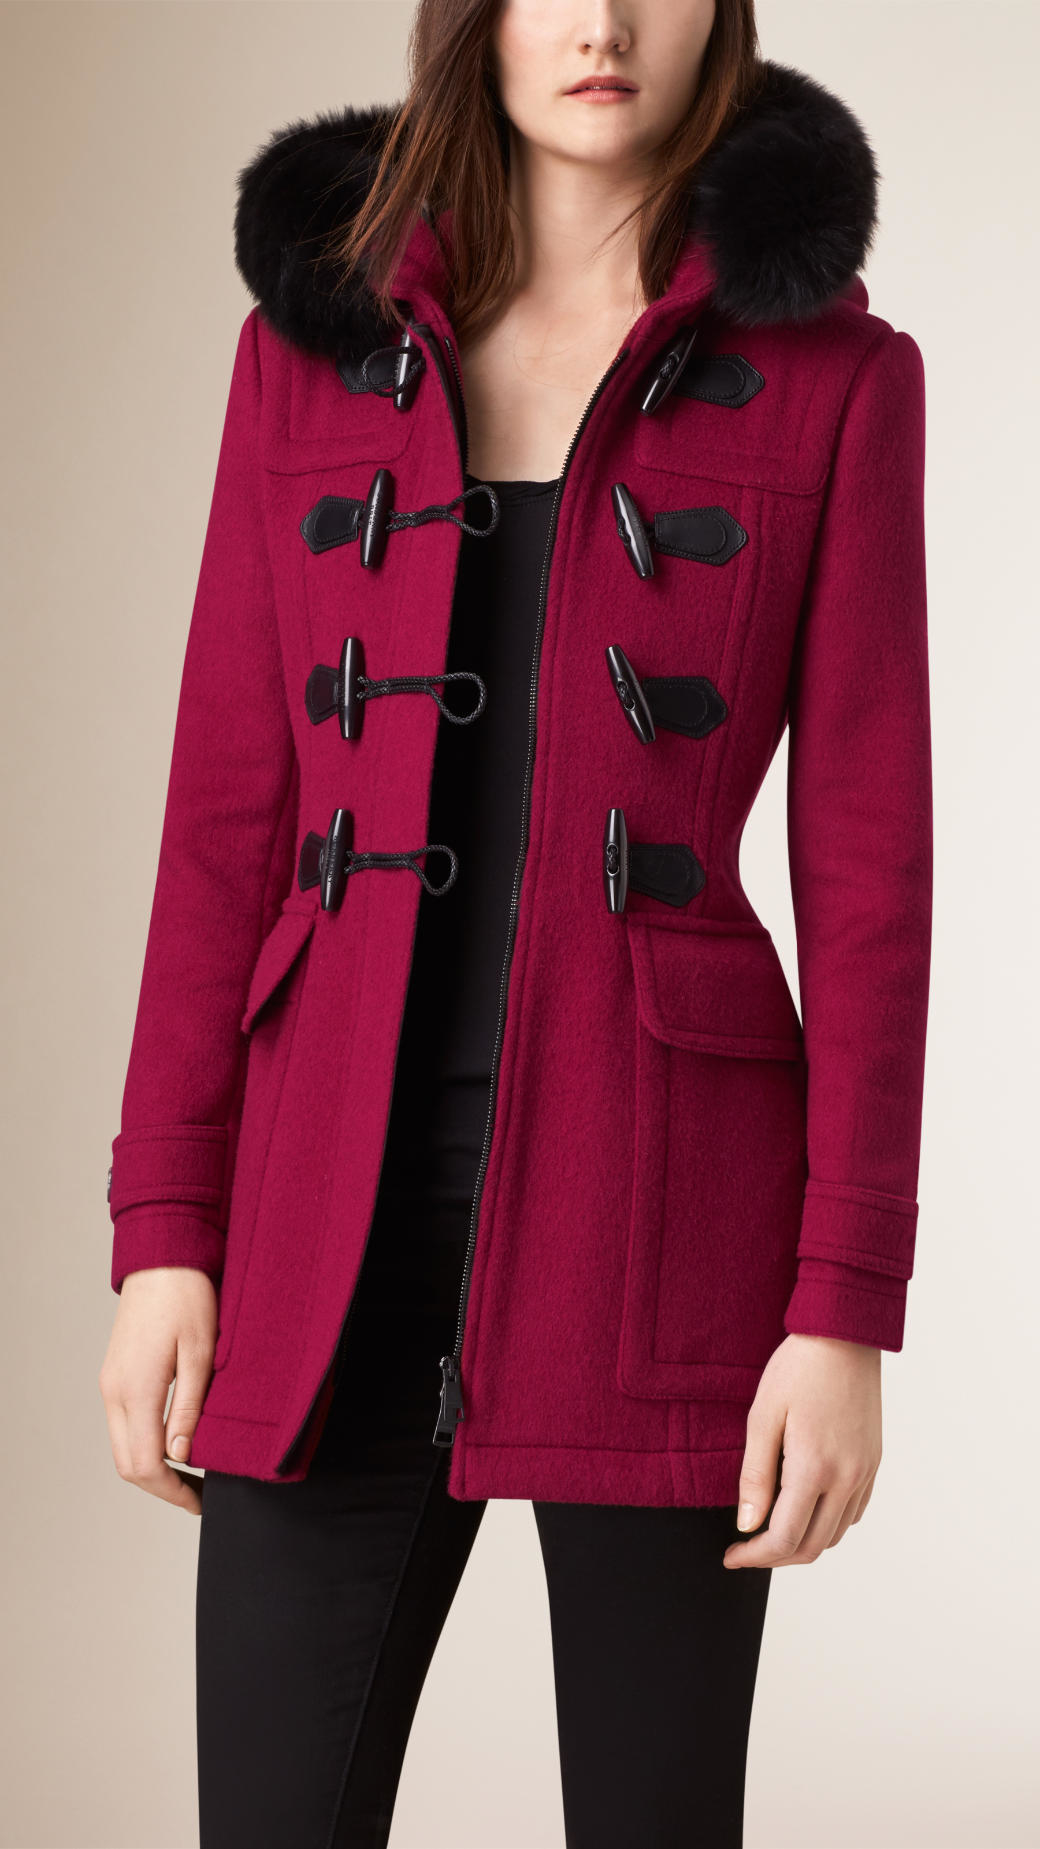 Shop for womens duffle coat online at Target. Free shipping on purchases over $35 and save 5% every day with your Target REDcard.